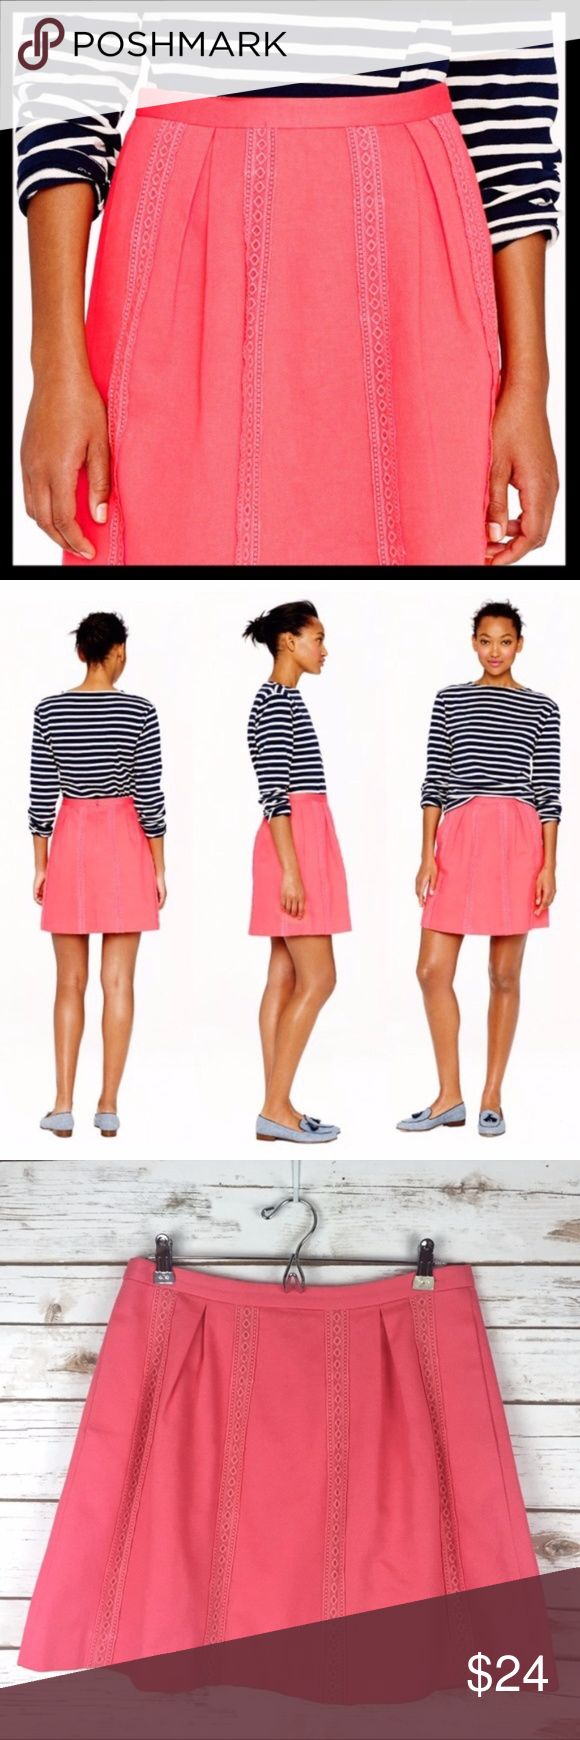 "3 FOR $30 🎉 j. crew // lace stripe coral skirt If you know us, then you know we're suckers for stripes in all shapes and sizes. To mix things up, we added stripes in the form of lace embroidery to this flirty pleated skirt in cotton piqué. Cotton. Back zip. On-seam pockets. Lined. Machine wash. Sits above waist. Great preowned condition. Waist measures 15.5"" across lying flat. 18.5"" long. ⭐️ Reduced from $24. J. Crew Skirts A-Line or Full"